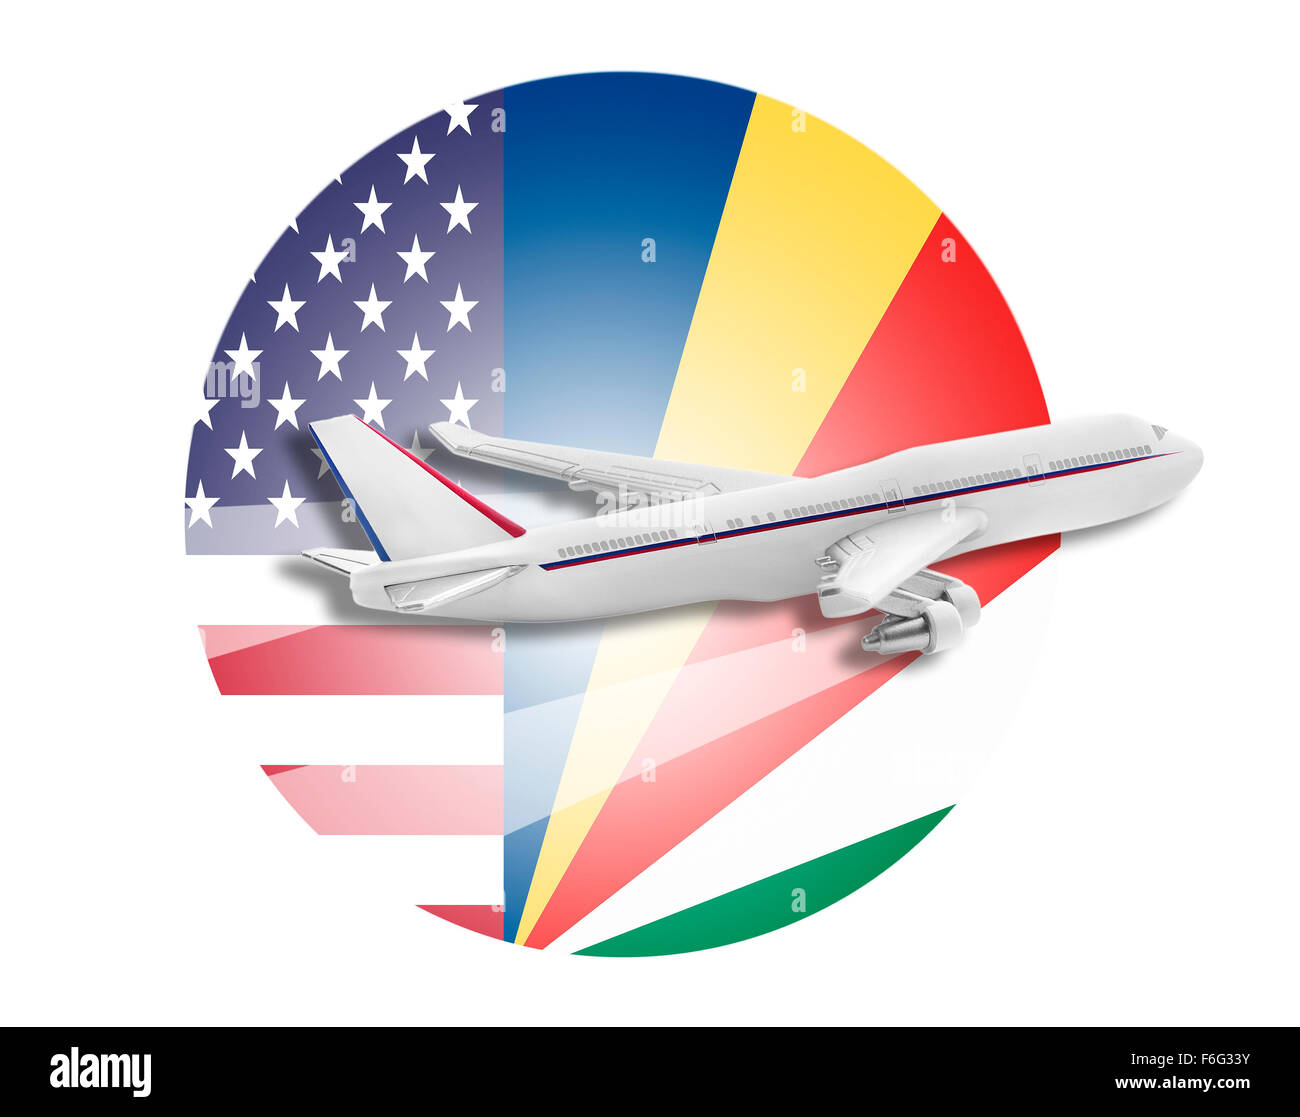 Plane, United States and Seychelles flags. - Stock Image